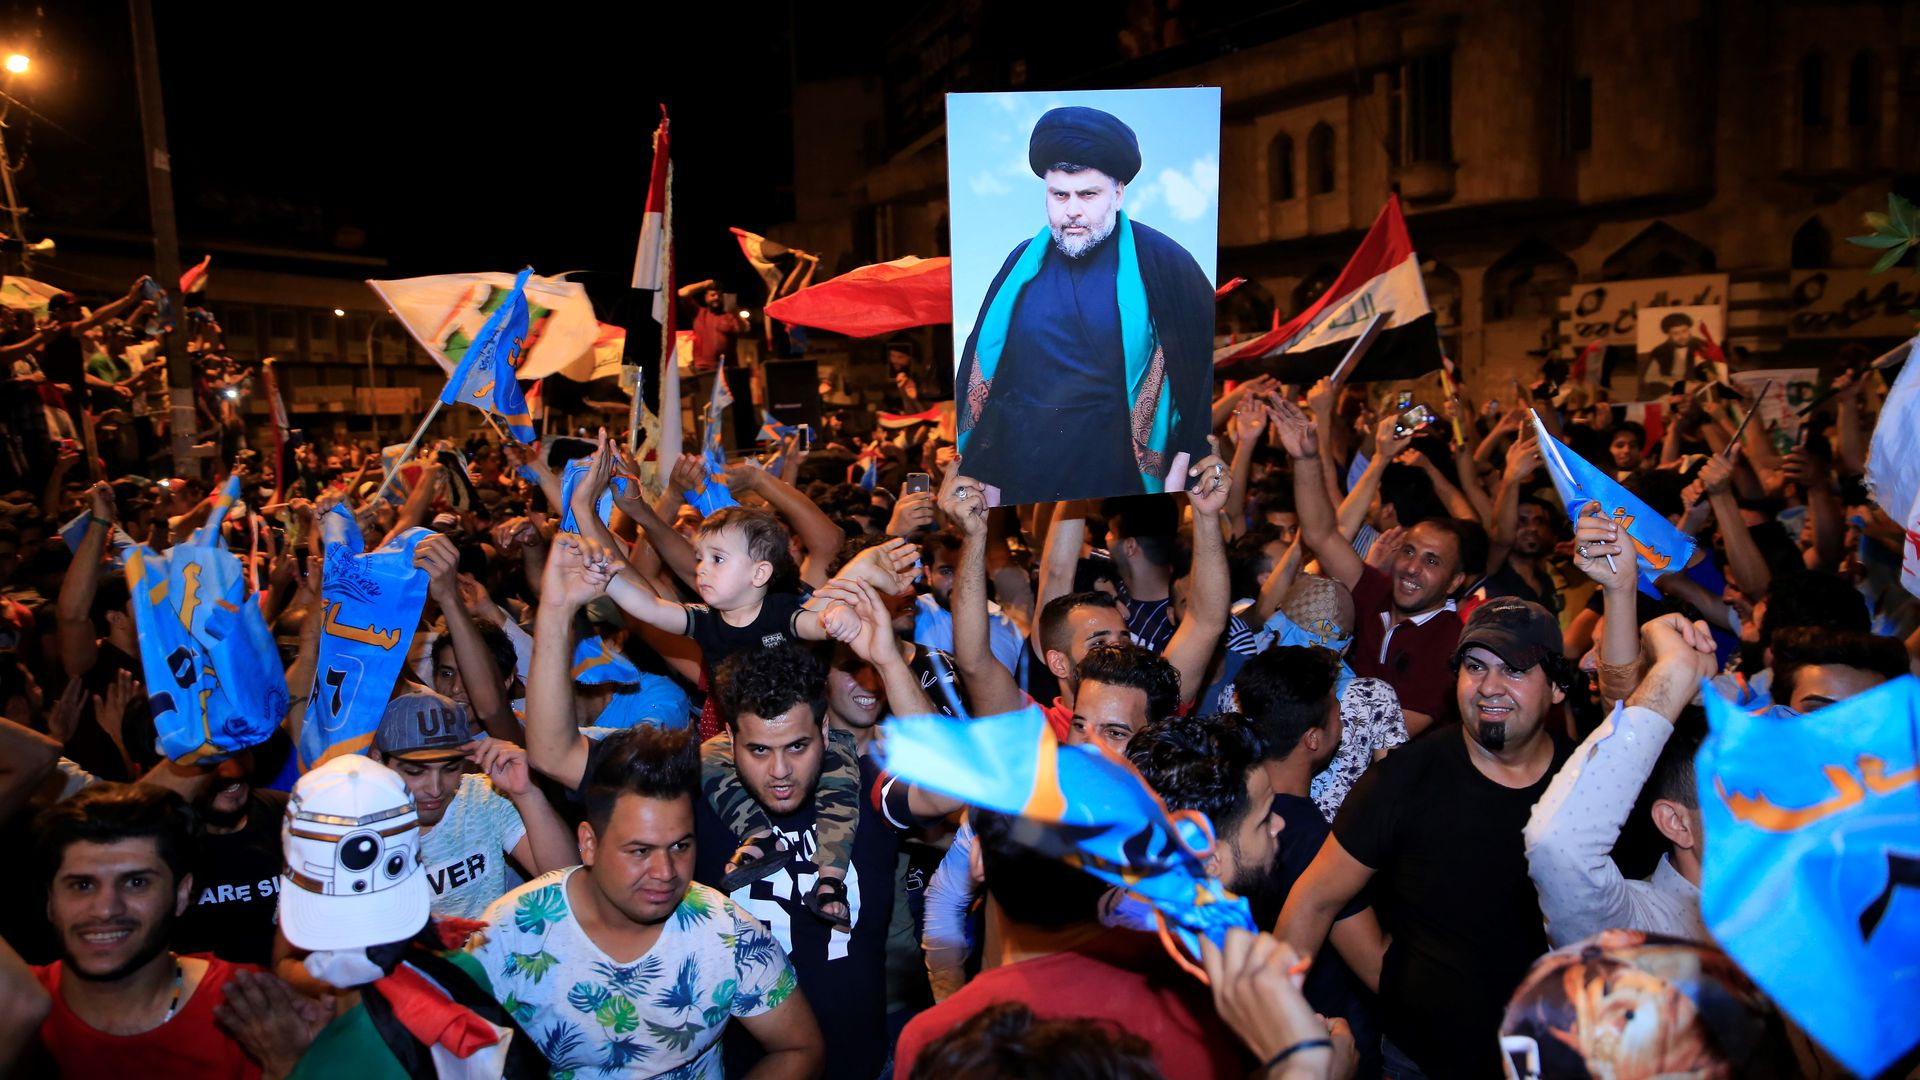 BAGHDAD, IRAQ - MAY 13: Supporters of Iraqi Shiite cleric Moqtada al-Sadr celebrate the results of the parliamentary election at the Tahrir Square, Baghdad, Iraq.